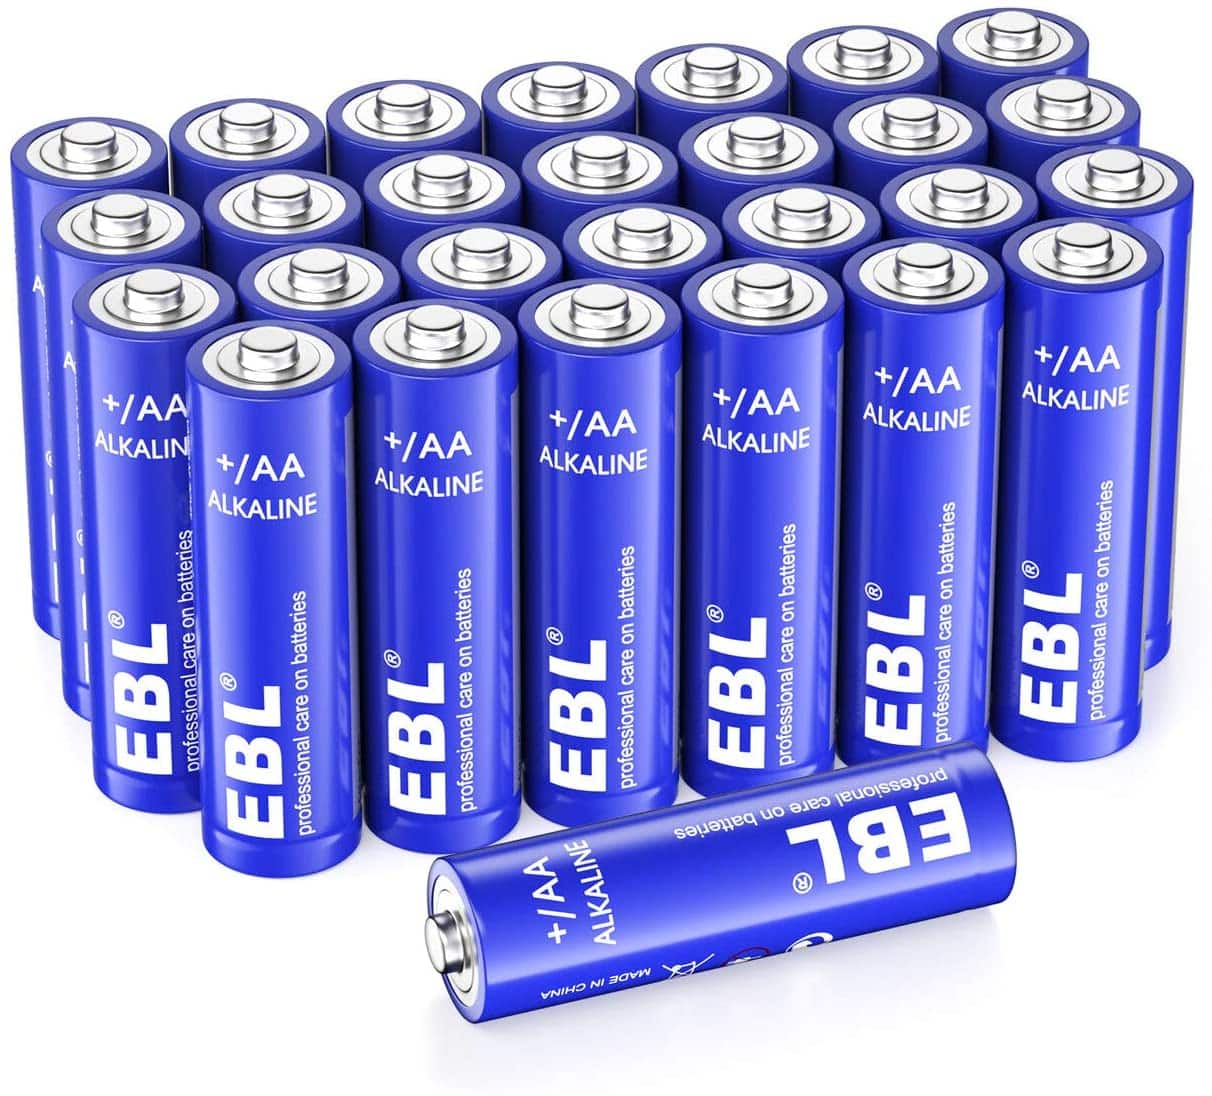 EBL Alkaline AA Batteries (28 Count), 1.5V Double A Long Lasting Alkaline AA Battery $9.59 at Amazon